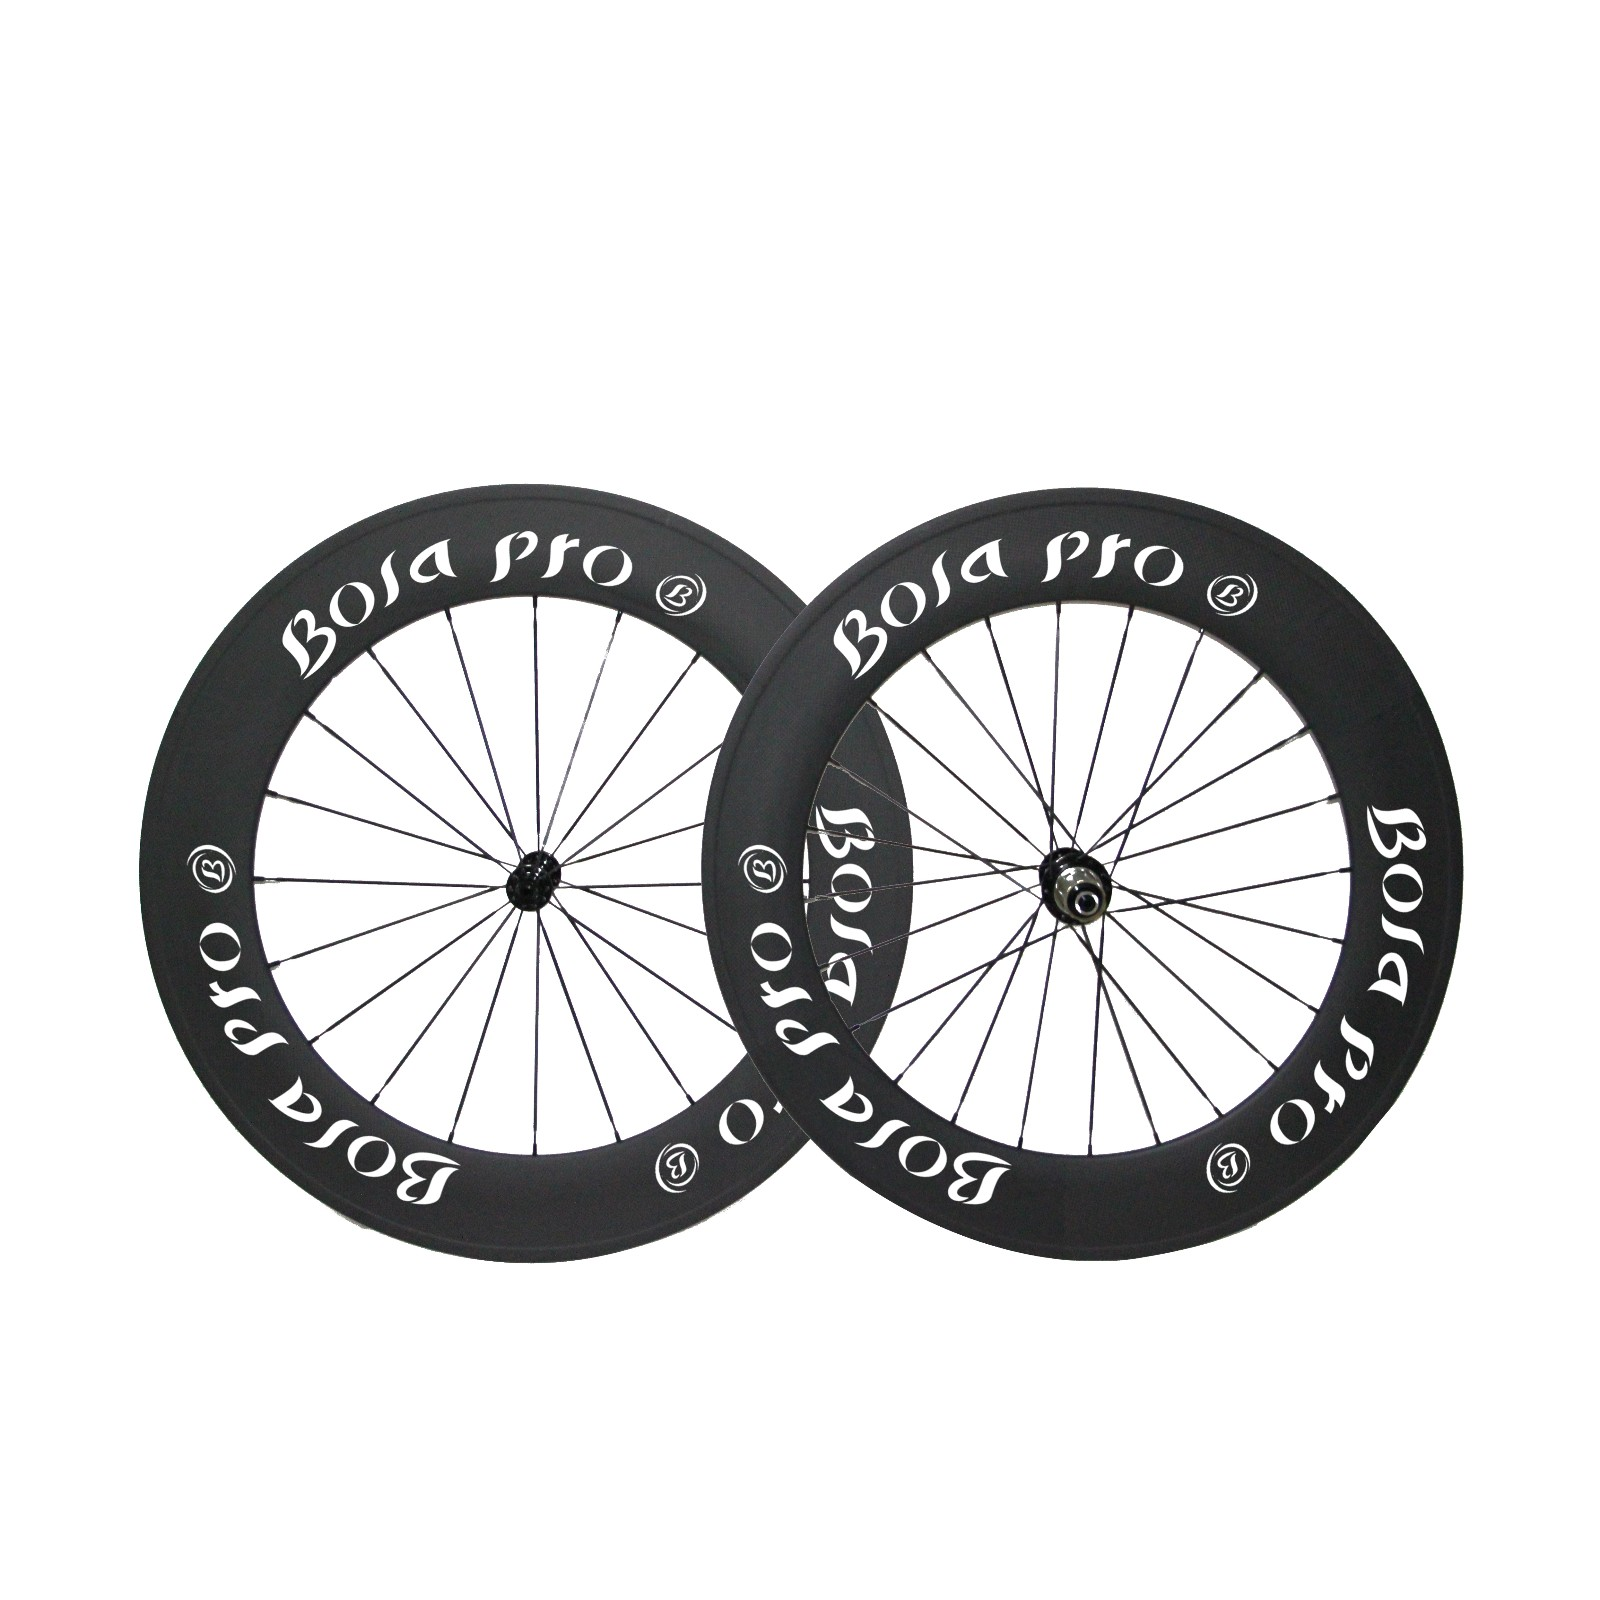 700C 88mm carbon wheelset with Novatec A271/F372 hub